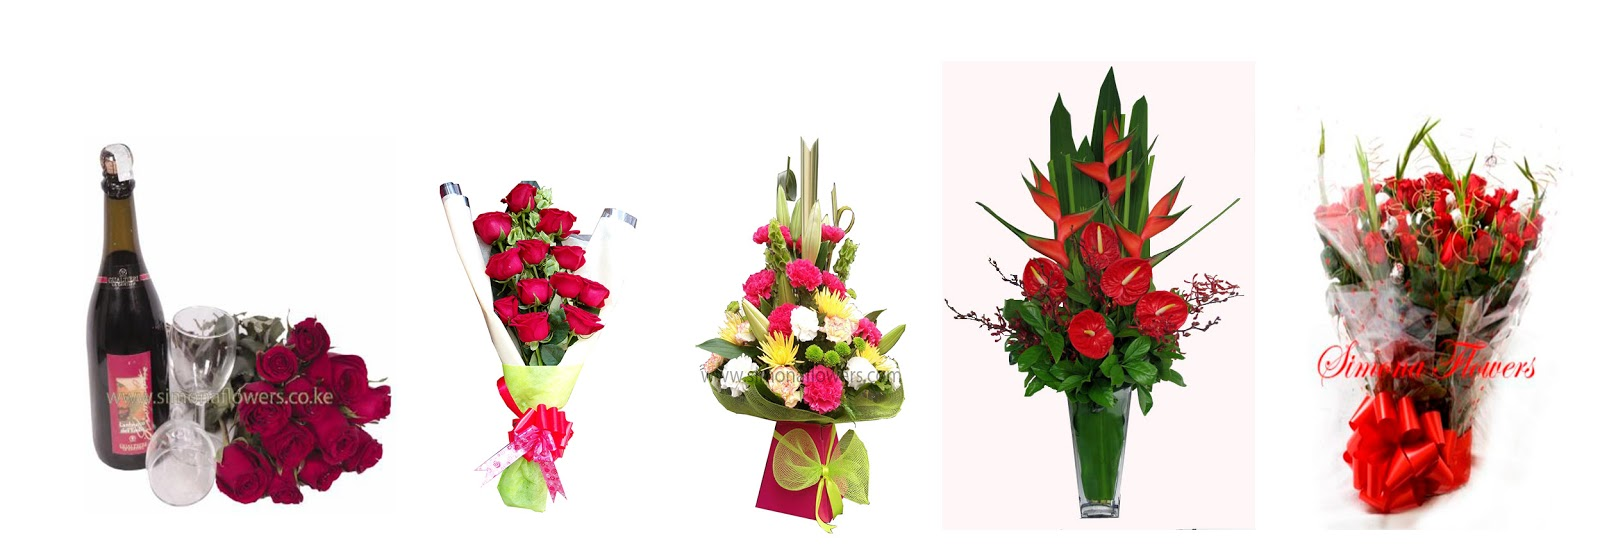 Simona flowers february 2017 on birthdays anniversaries to say hello or for any reason at all its always a treat to open the door to beautiful flowers and gourmet gifts izmirmasajfo